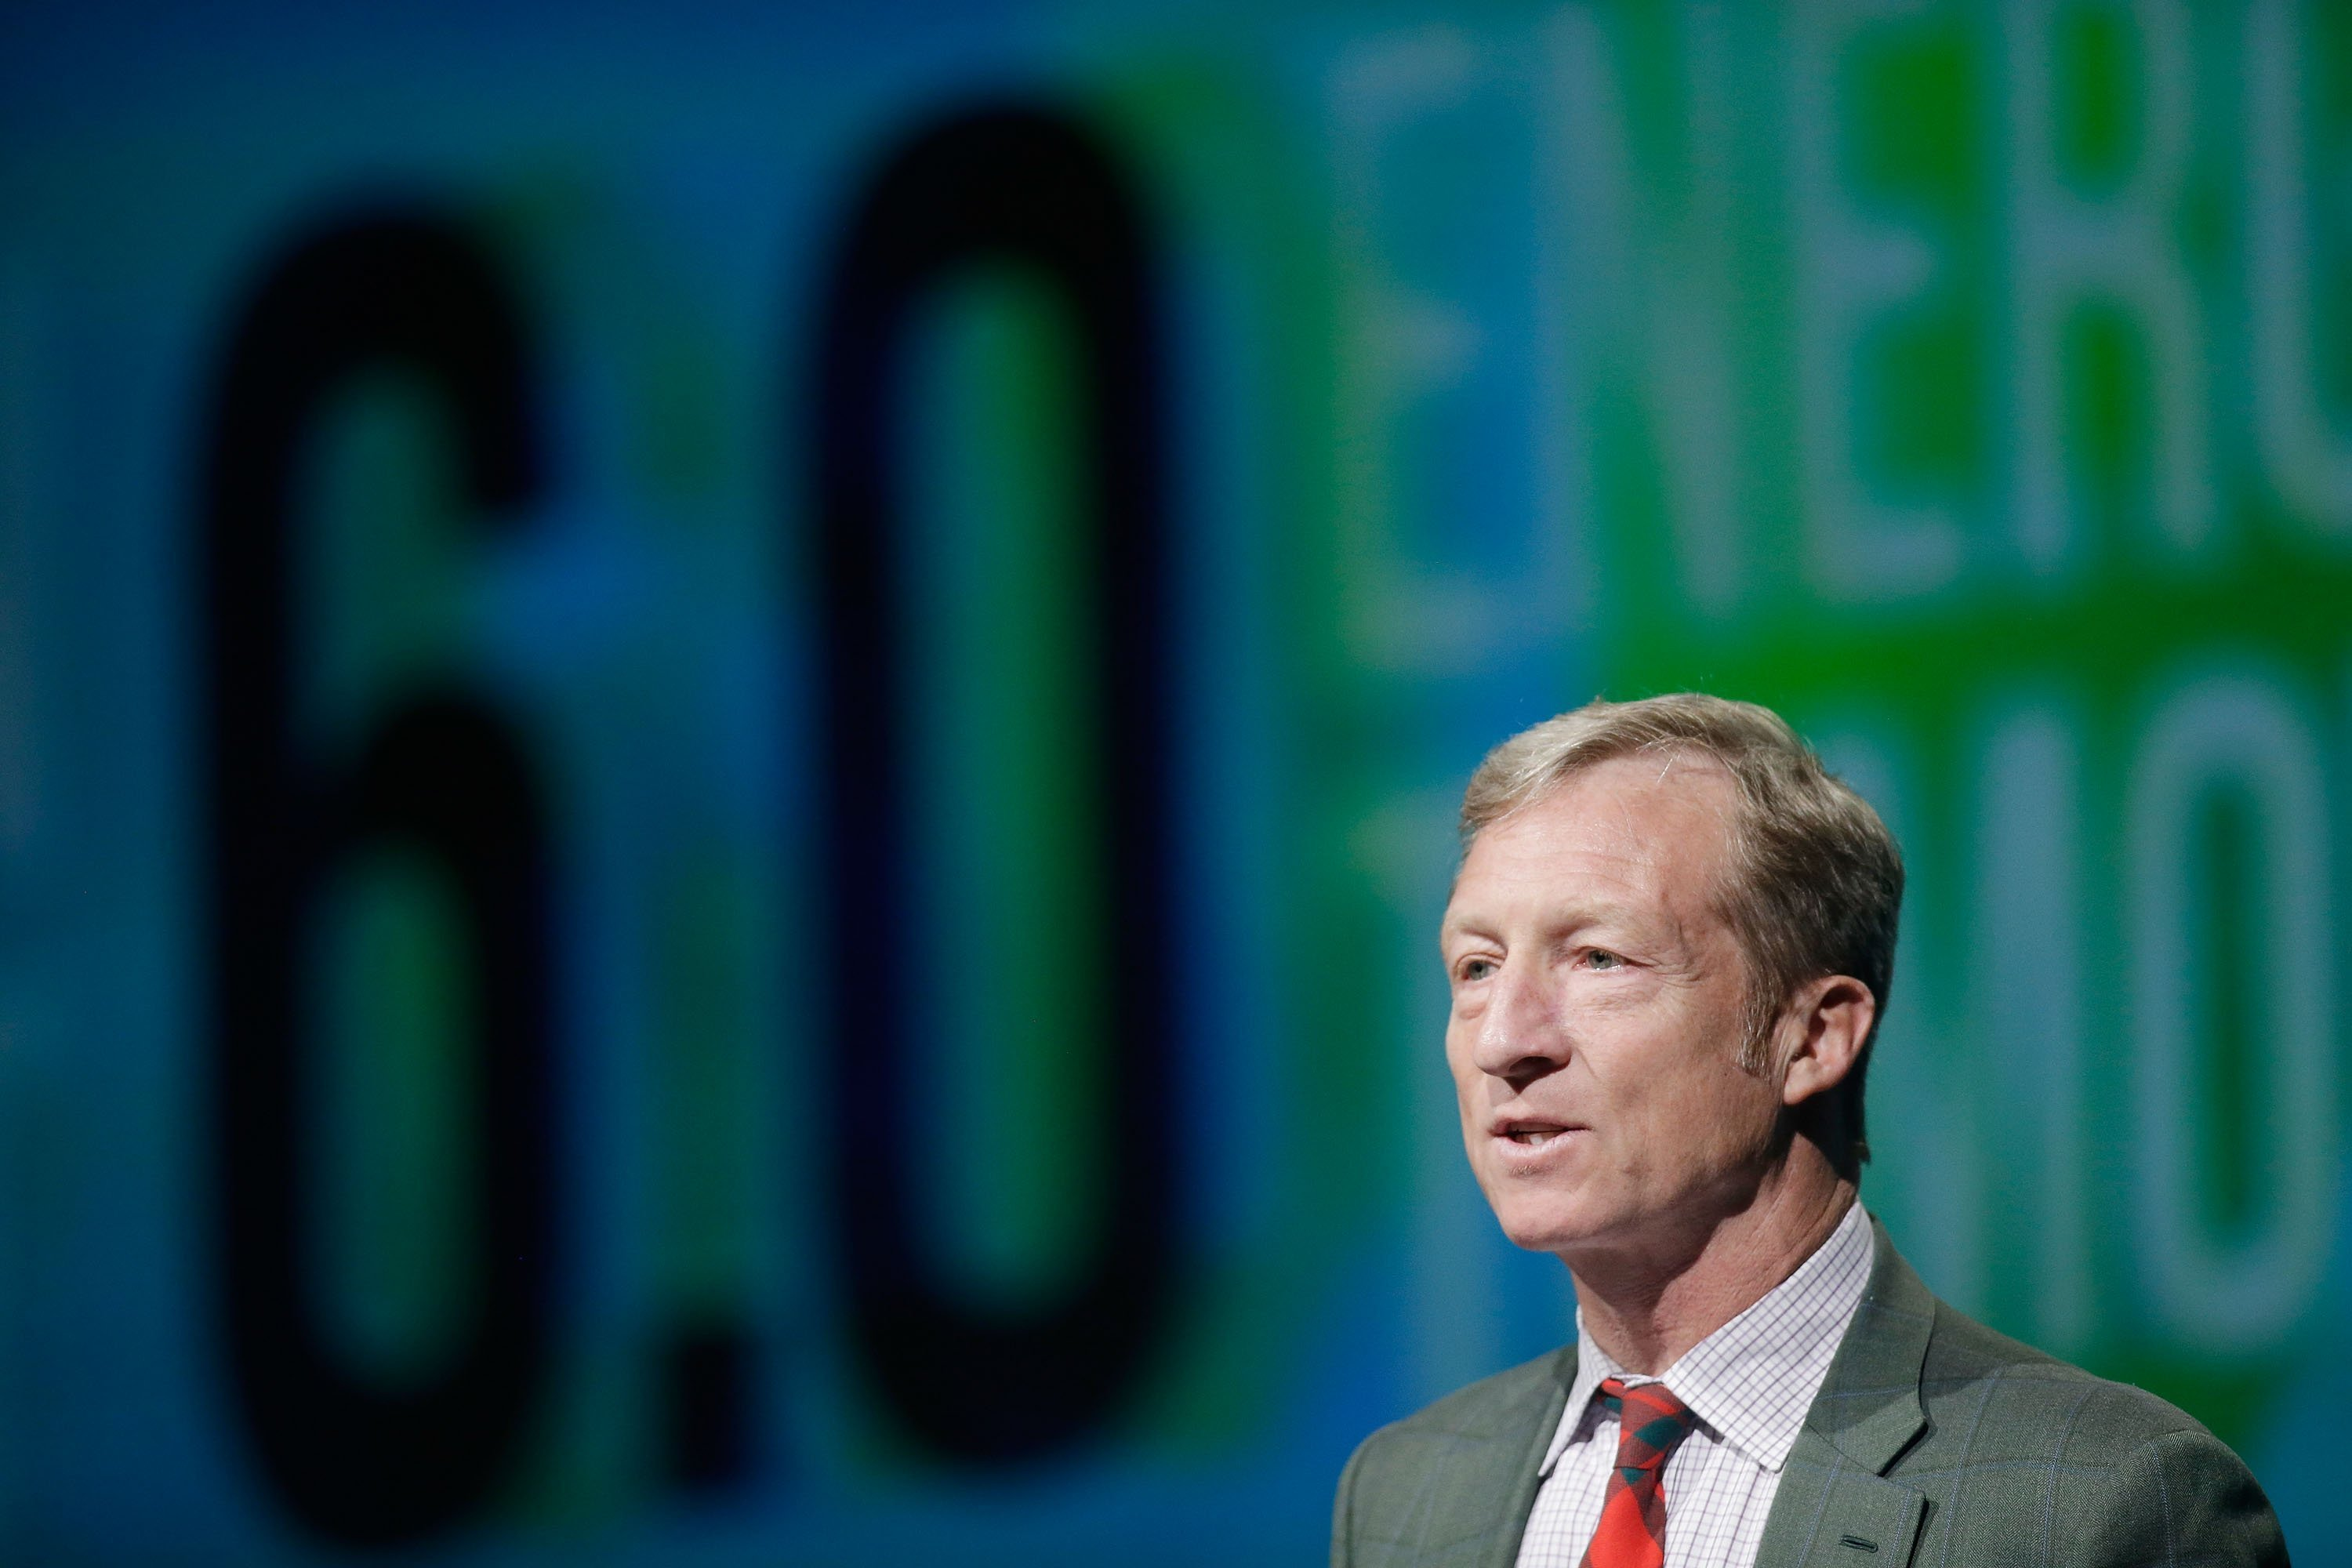 Tom Steyer Made Ad Calling For Trump's Impeachment